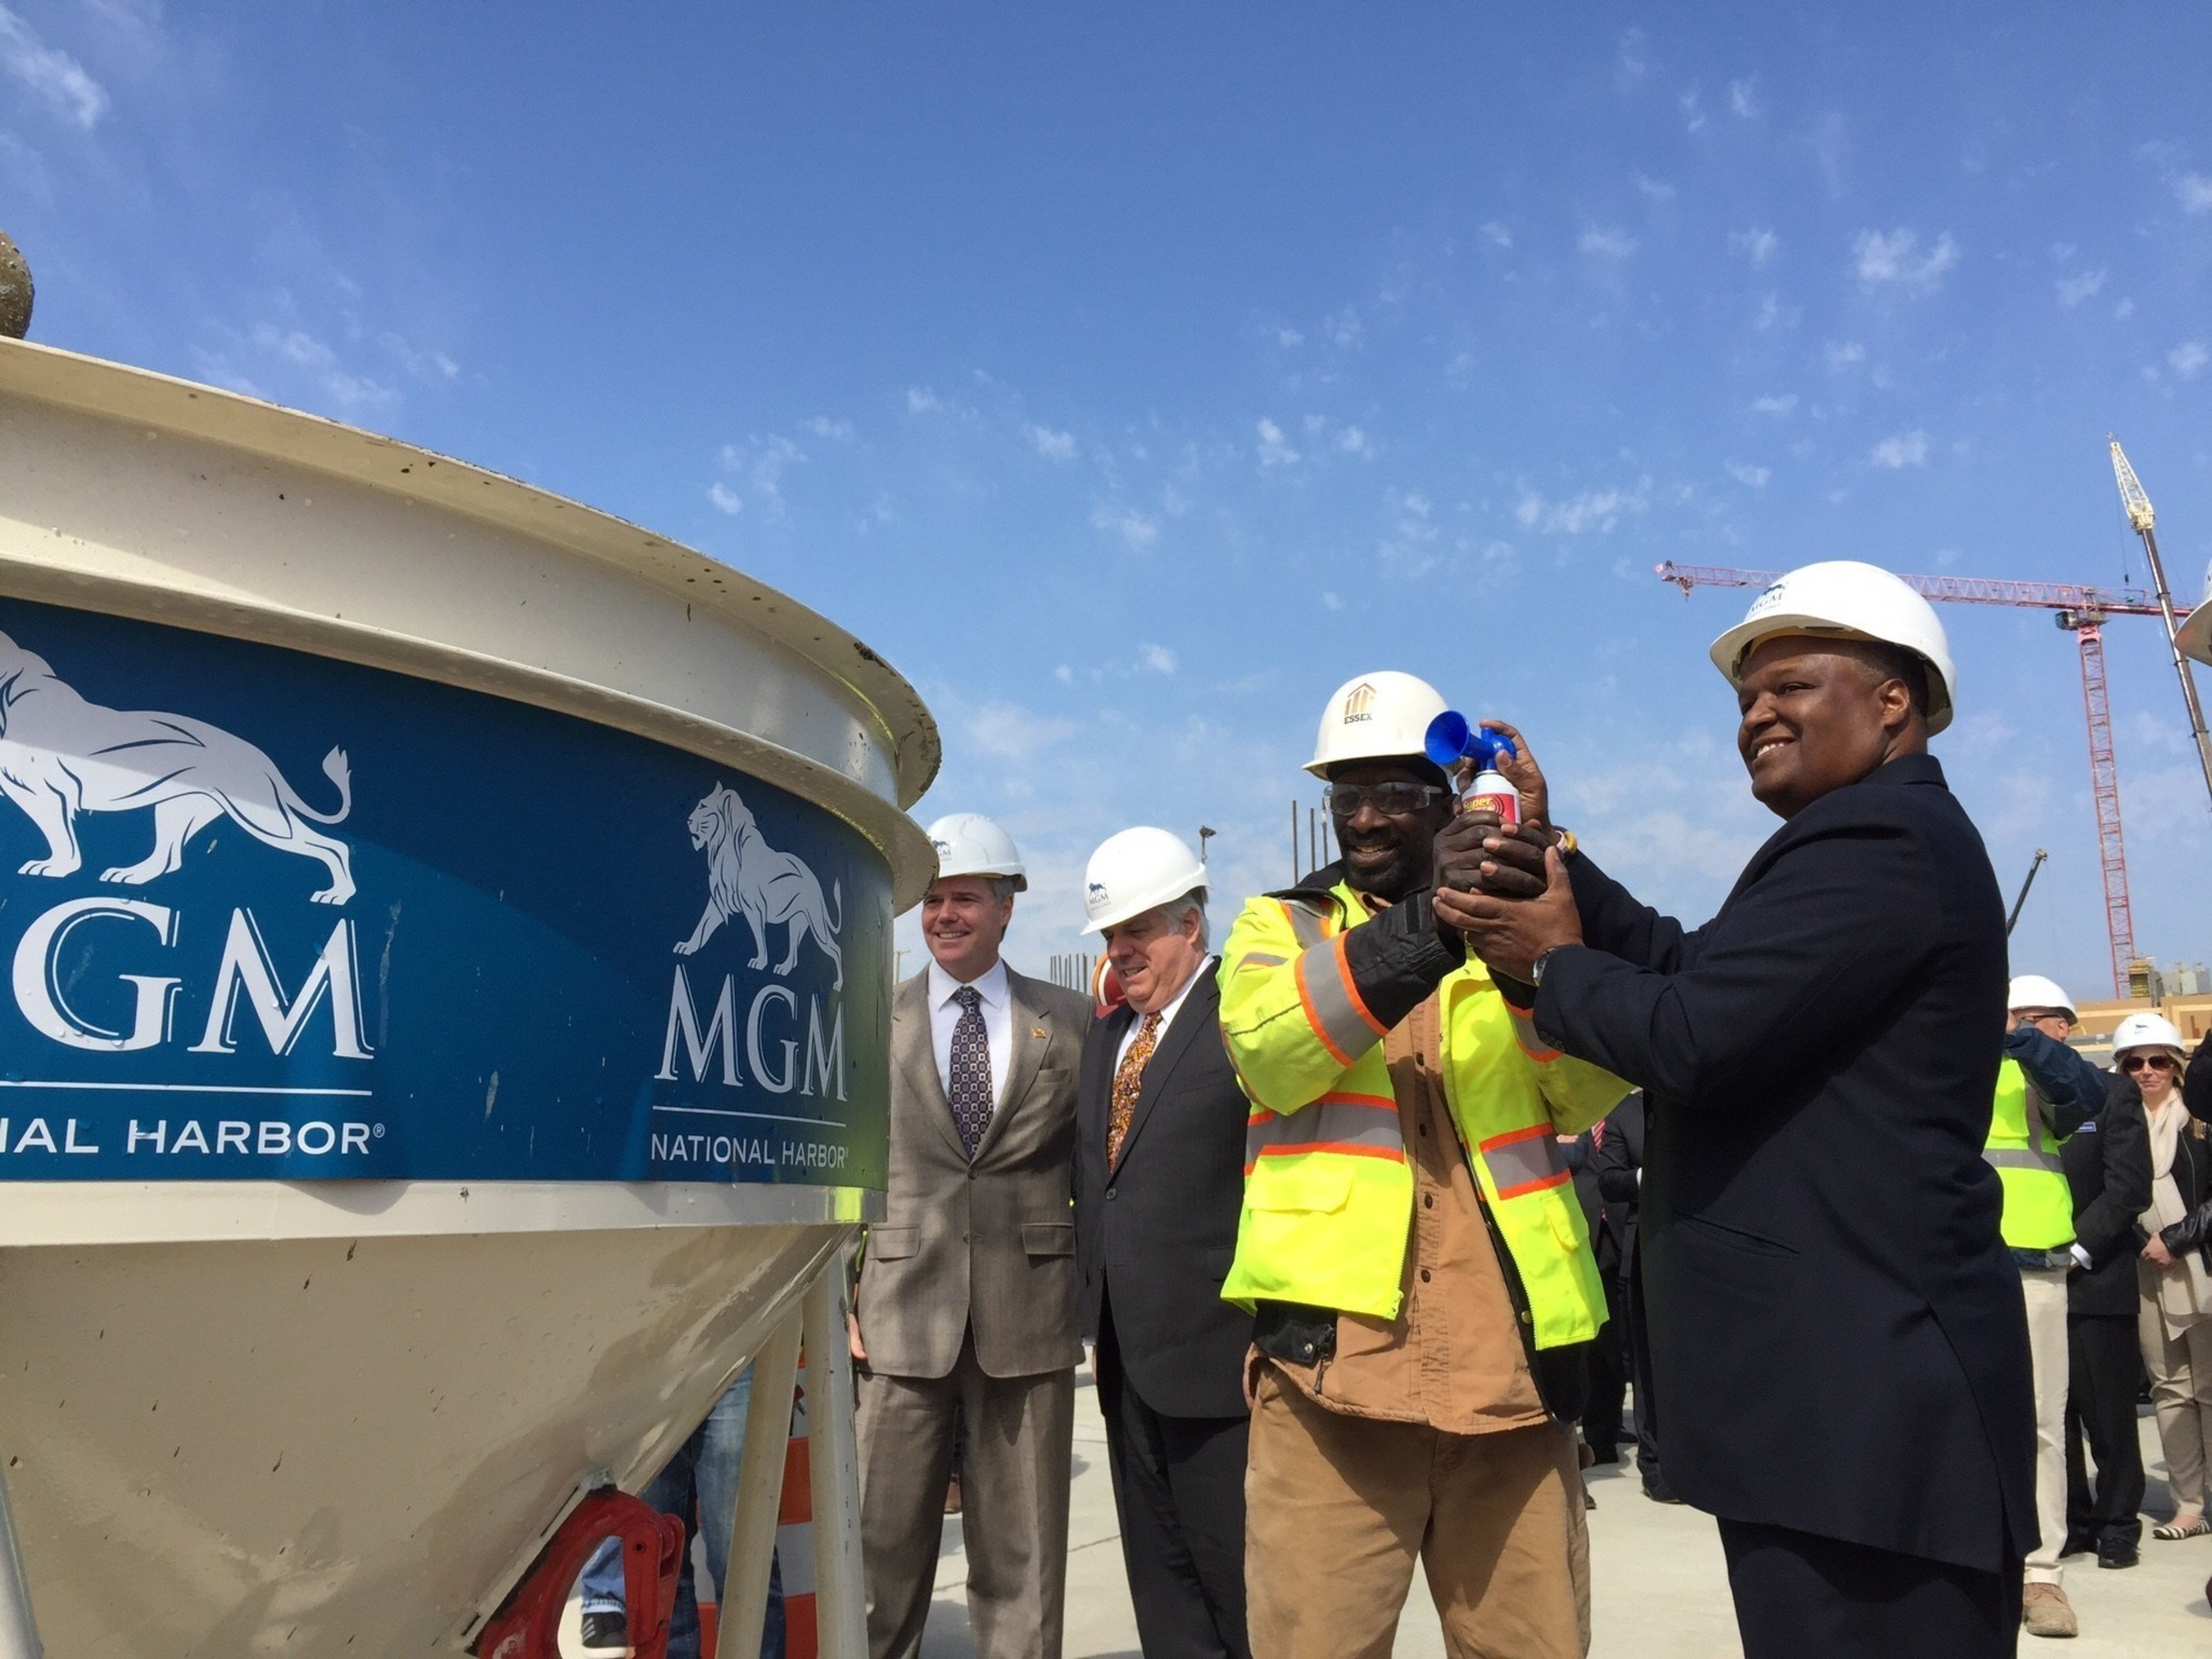 MGM National Harbor celebrates the hiring of the resort's 1000th construction employee with (Left to right) MGM Resorts International Chairman and CEO Jim Murren, Maryland Governor Larry Hogan, Essex Construction Labor Foreman Thomas Turner and Rushern Baker, County Executive of Prince George's County, MD.